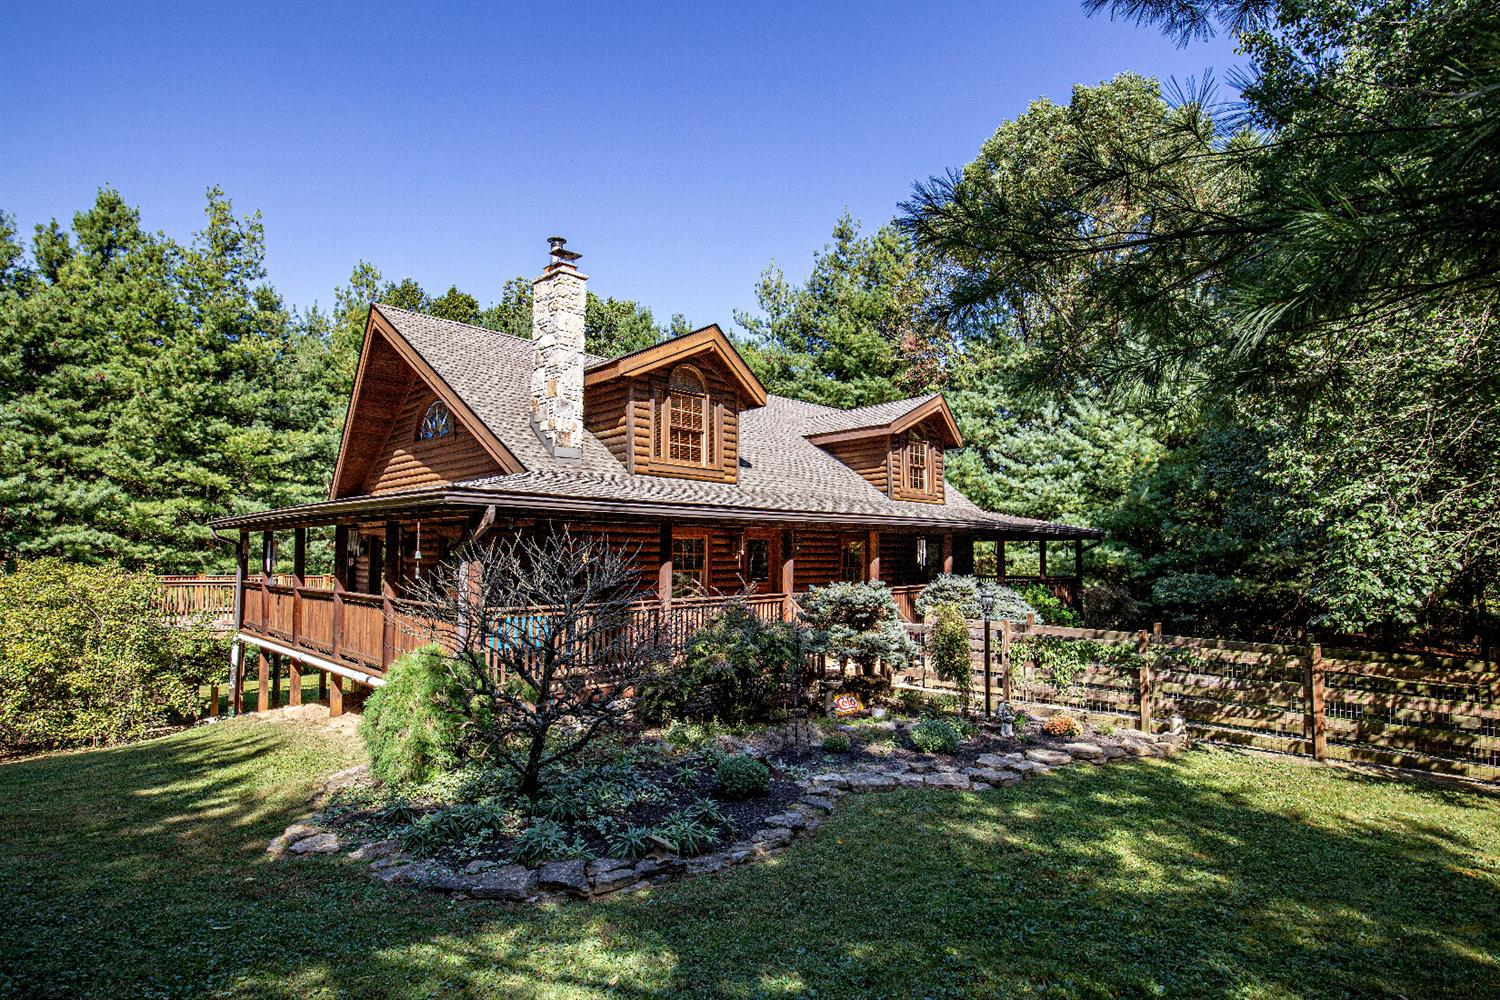 Your own mountain retreat without leaving Cincinnati! Secluded, pristine log cabin home, heavily wooded lot! Gleaming hardwood flooring & open floor plan add to the allure. two story great room with stone fireplace leads to kitchen w/granite counters, counter bar, island. Master suite is one of biggest you'll find! Finished LL w/walk-out.